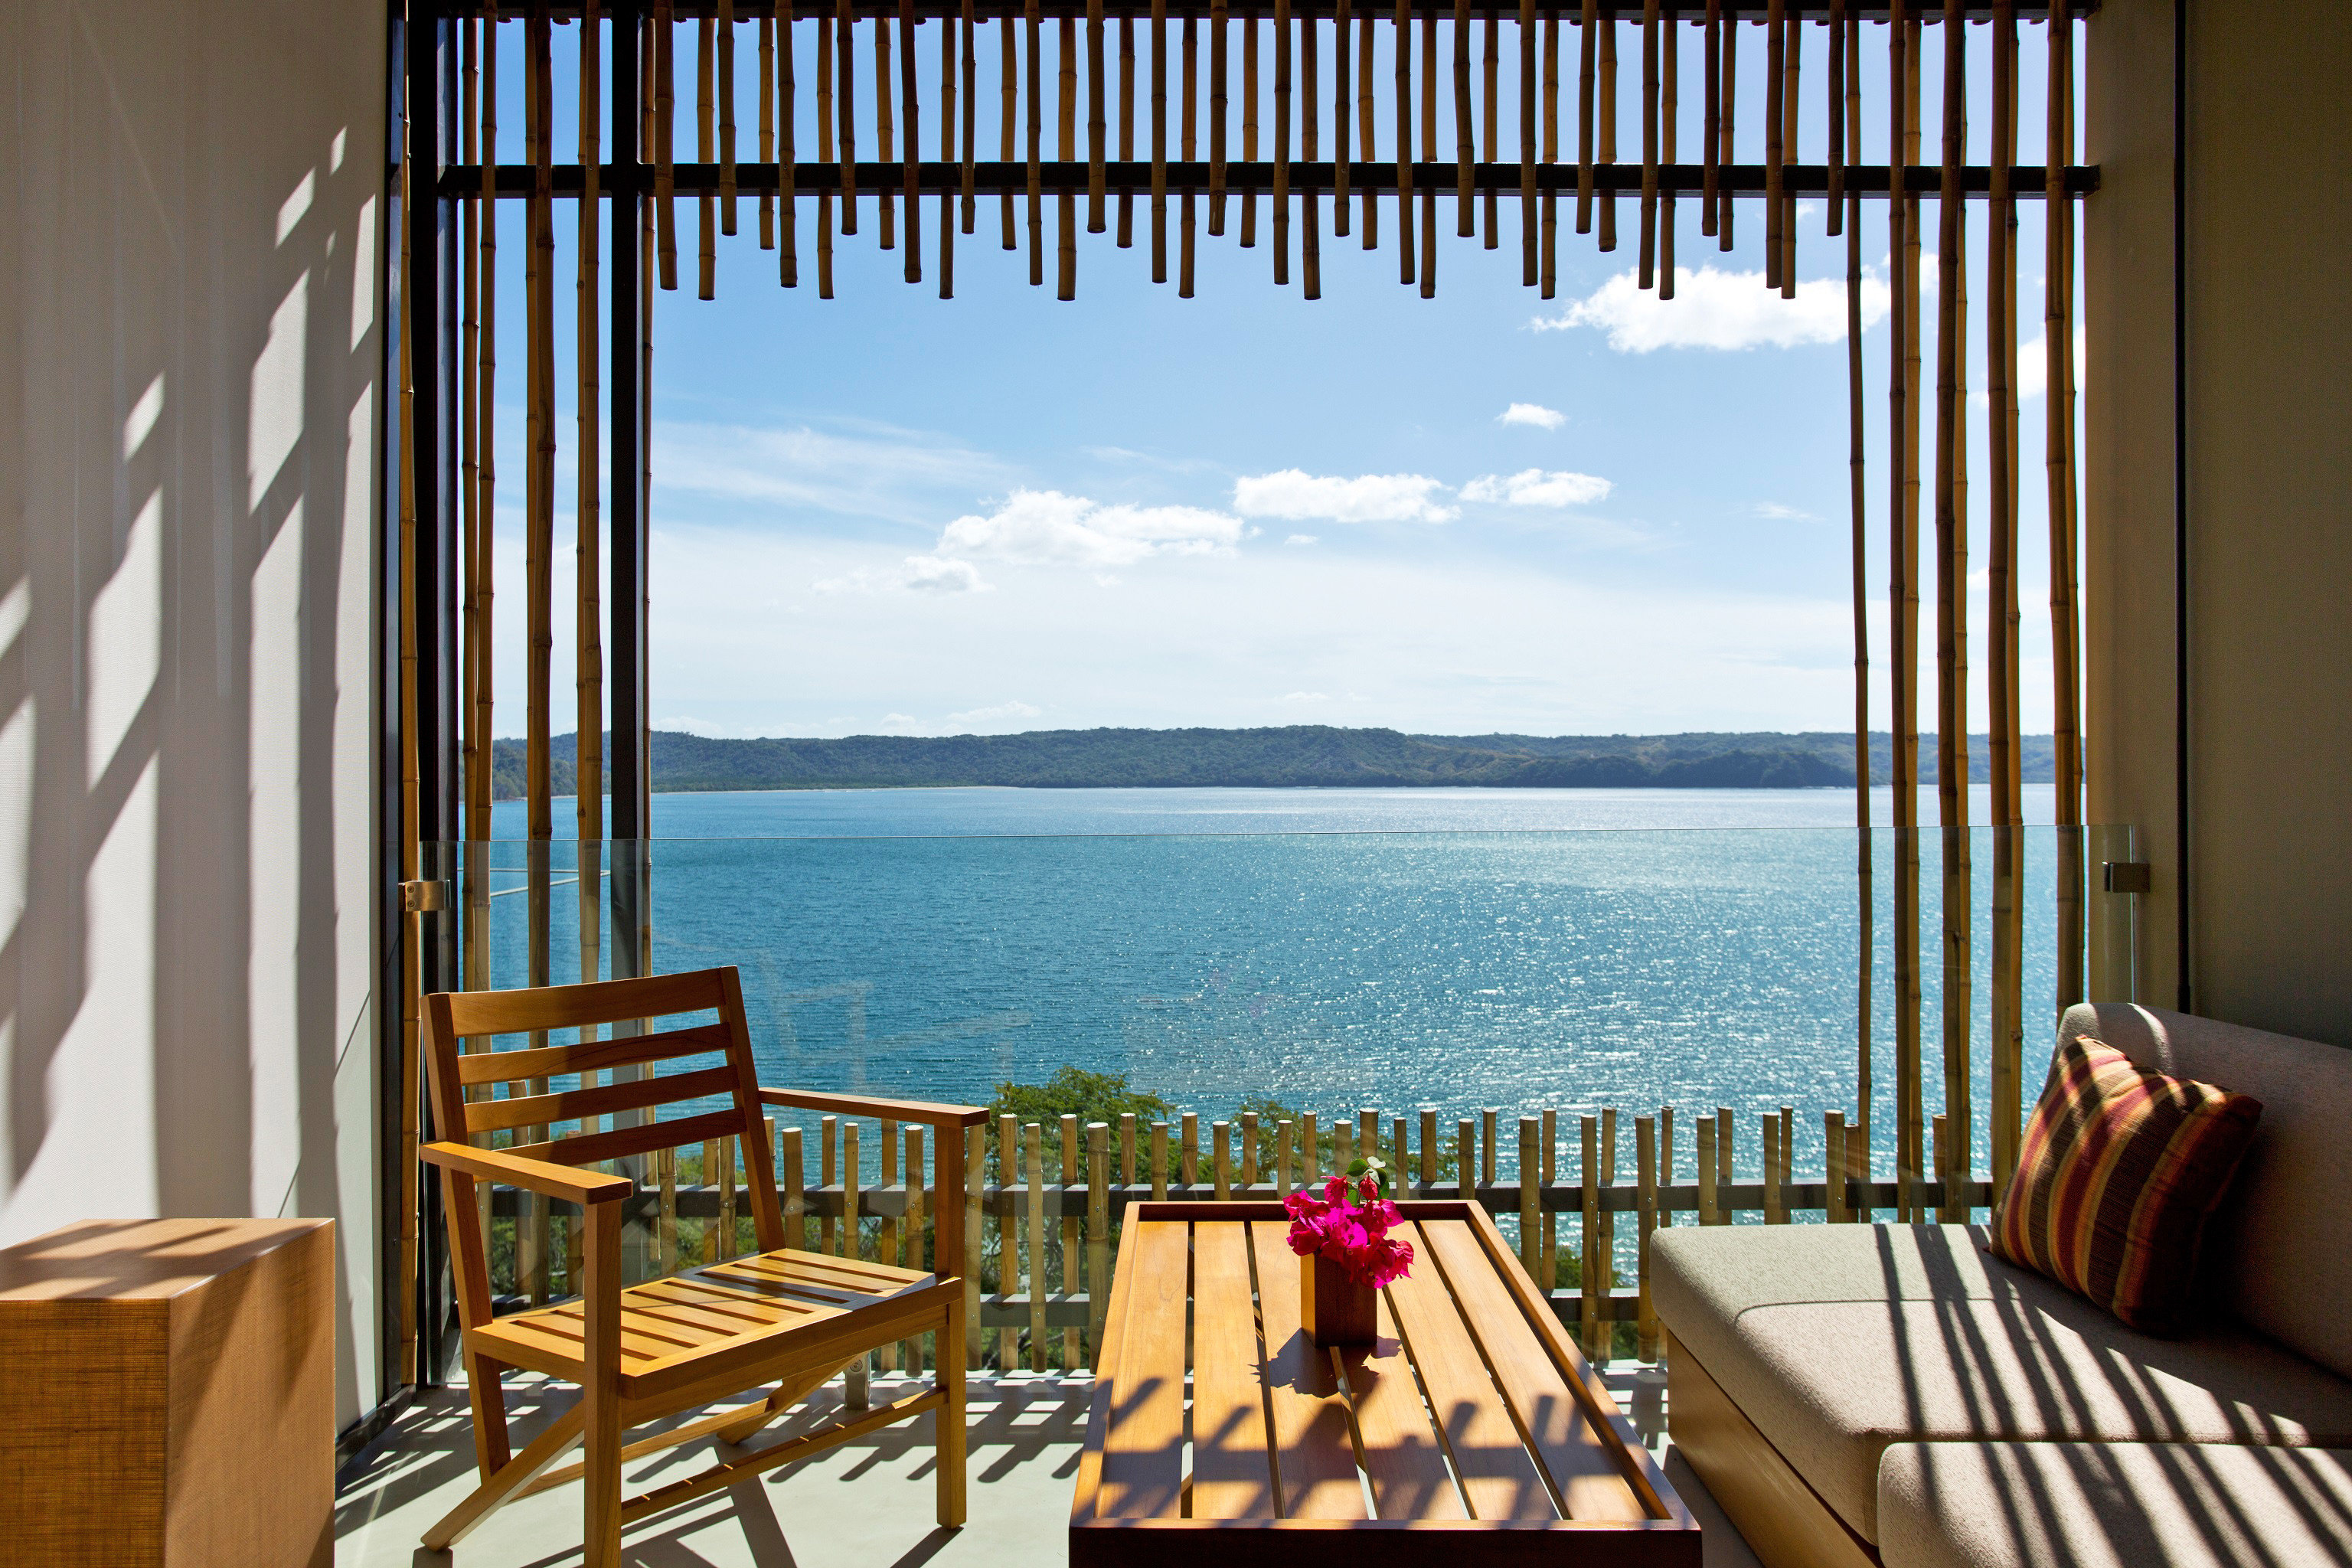 Deck Hotels Living Modern Resort Scenic views water chair property room interior design vacation estate cottage overlooking Villa apartment